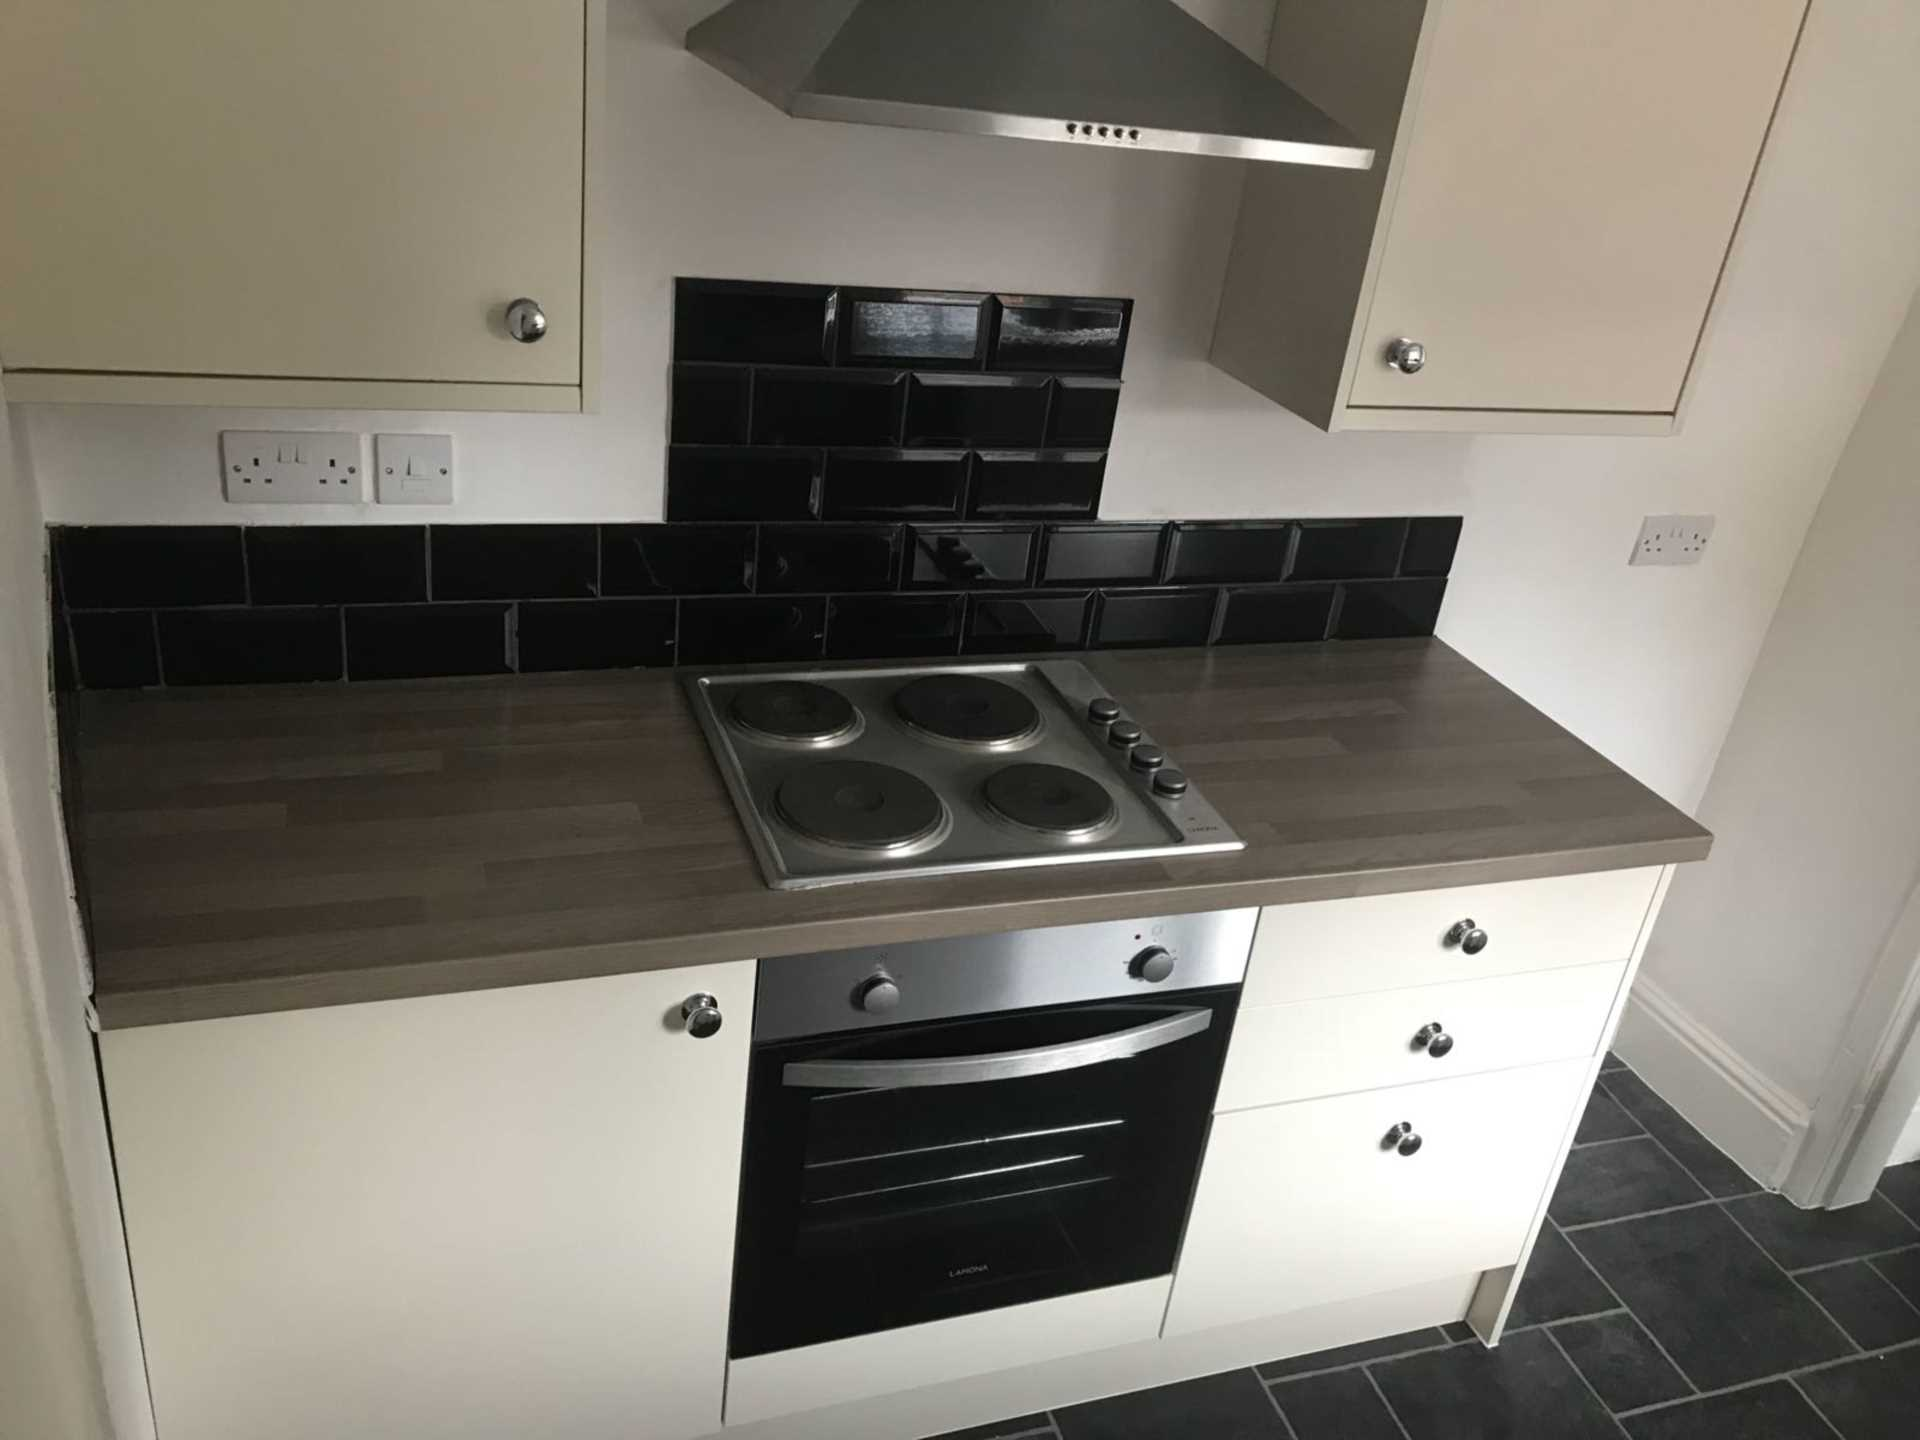 2 bed Apartment for rent in Middlewich. From Cozyhomes 4u Ltd